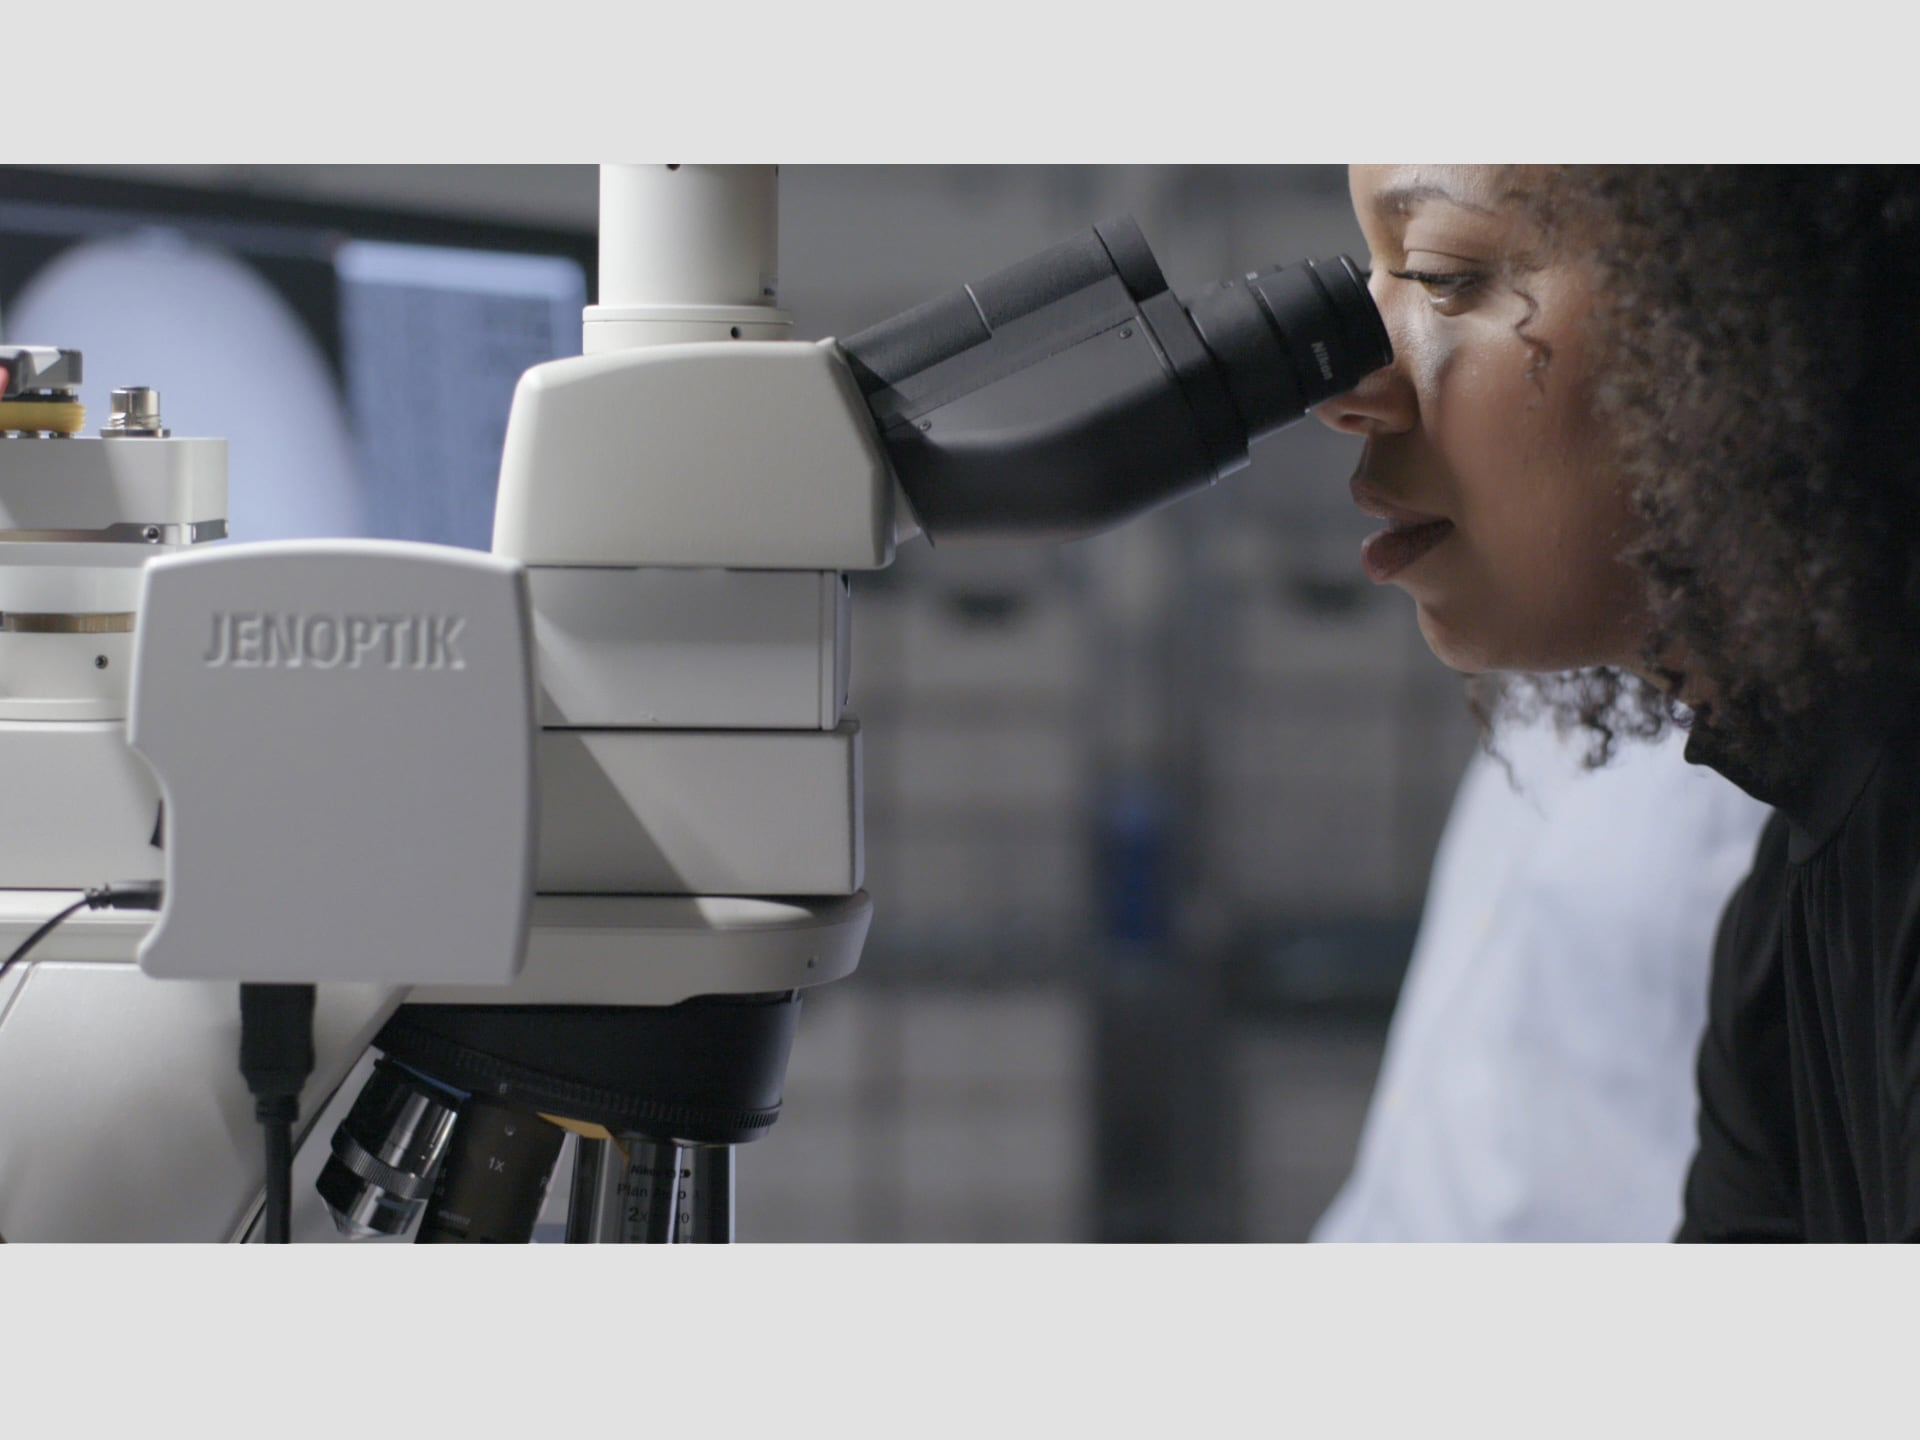 JENOPTIK Optical Systems, LLC collaborated with Google on microscopy technology to assist pathologists in detecting cancer with deep learning